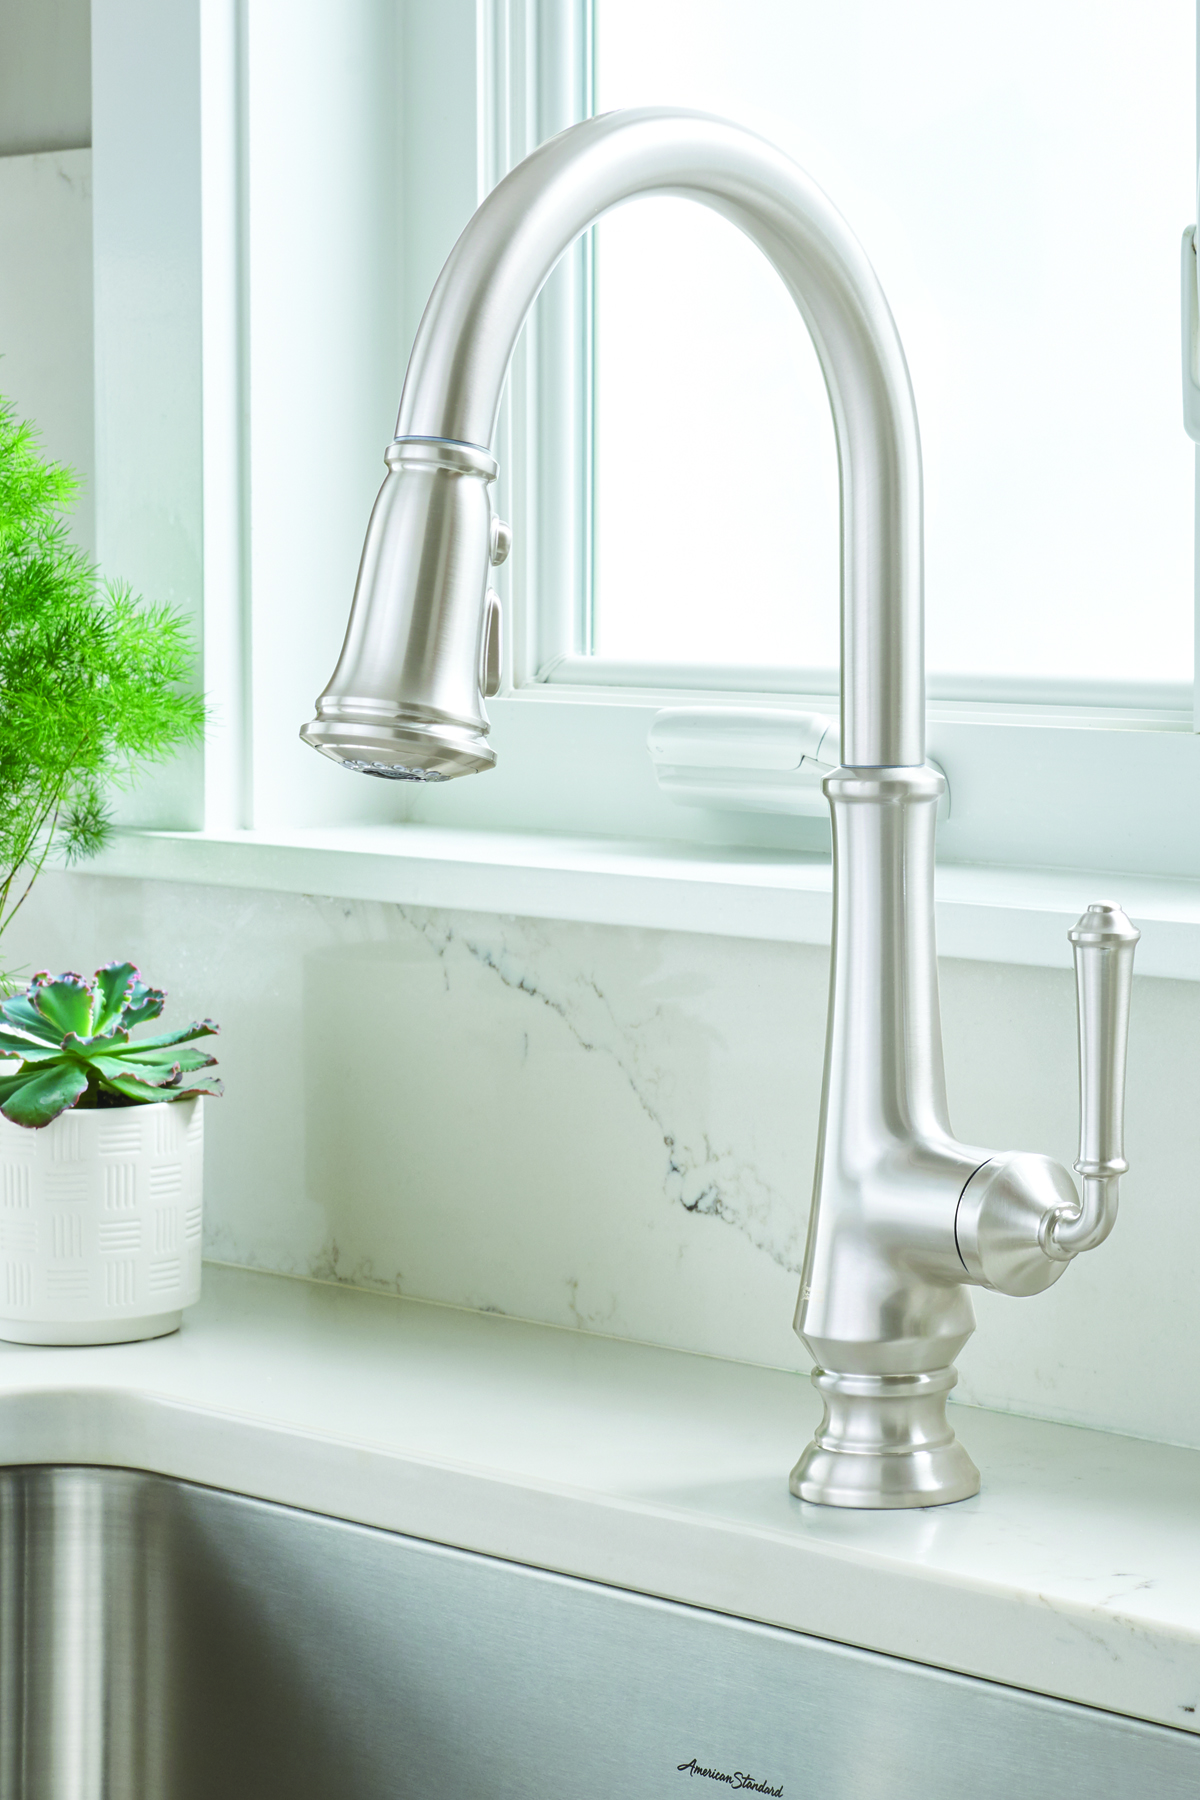 Delancey Kitchen Faucet For Residential Pro